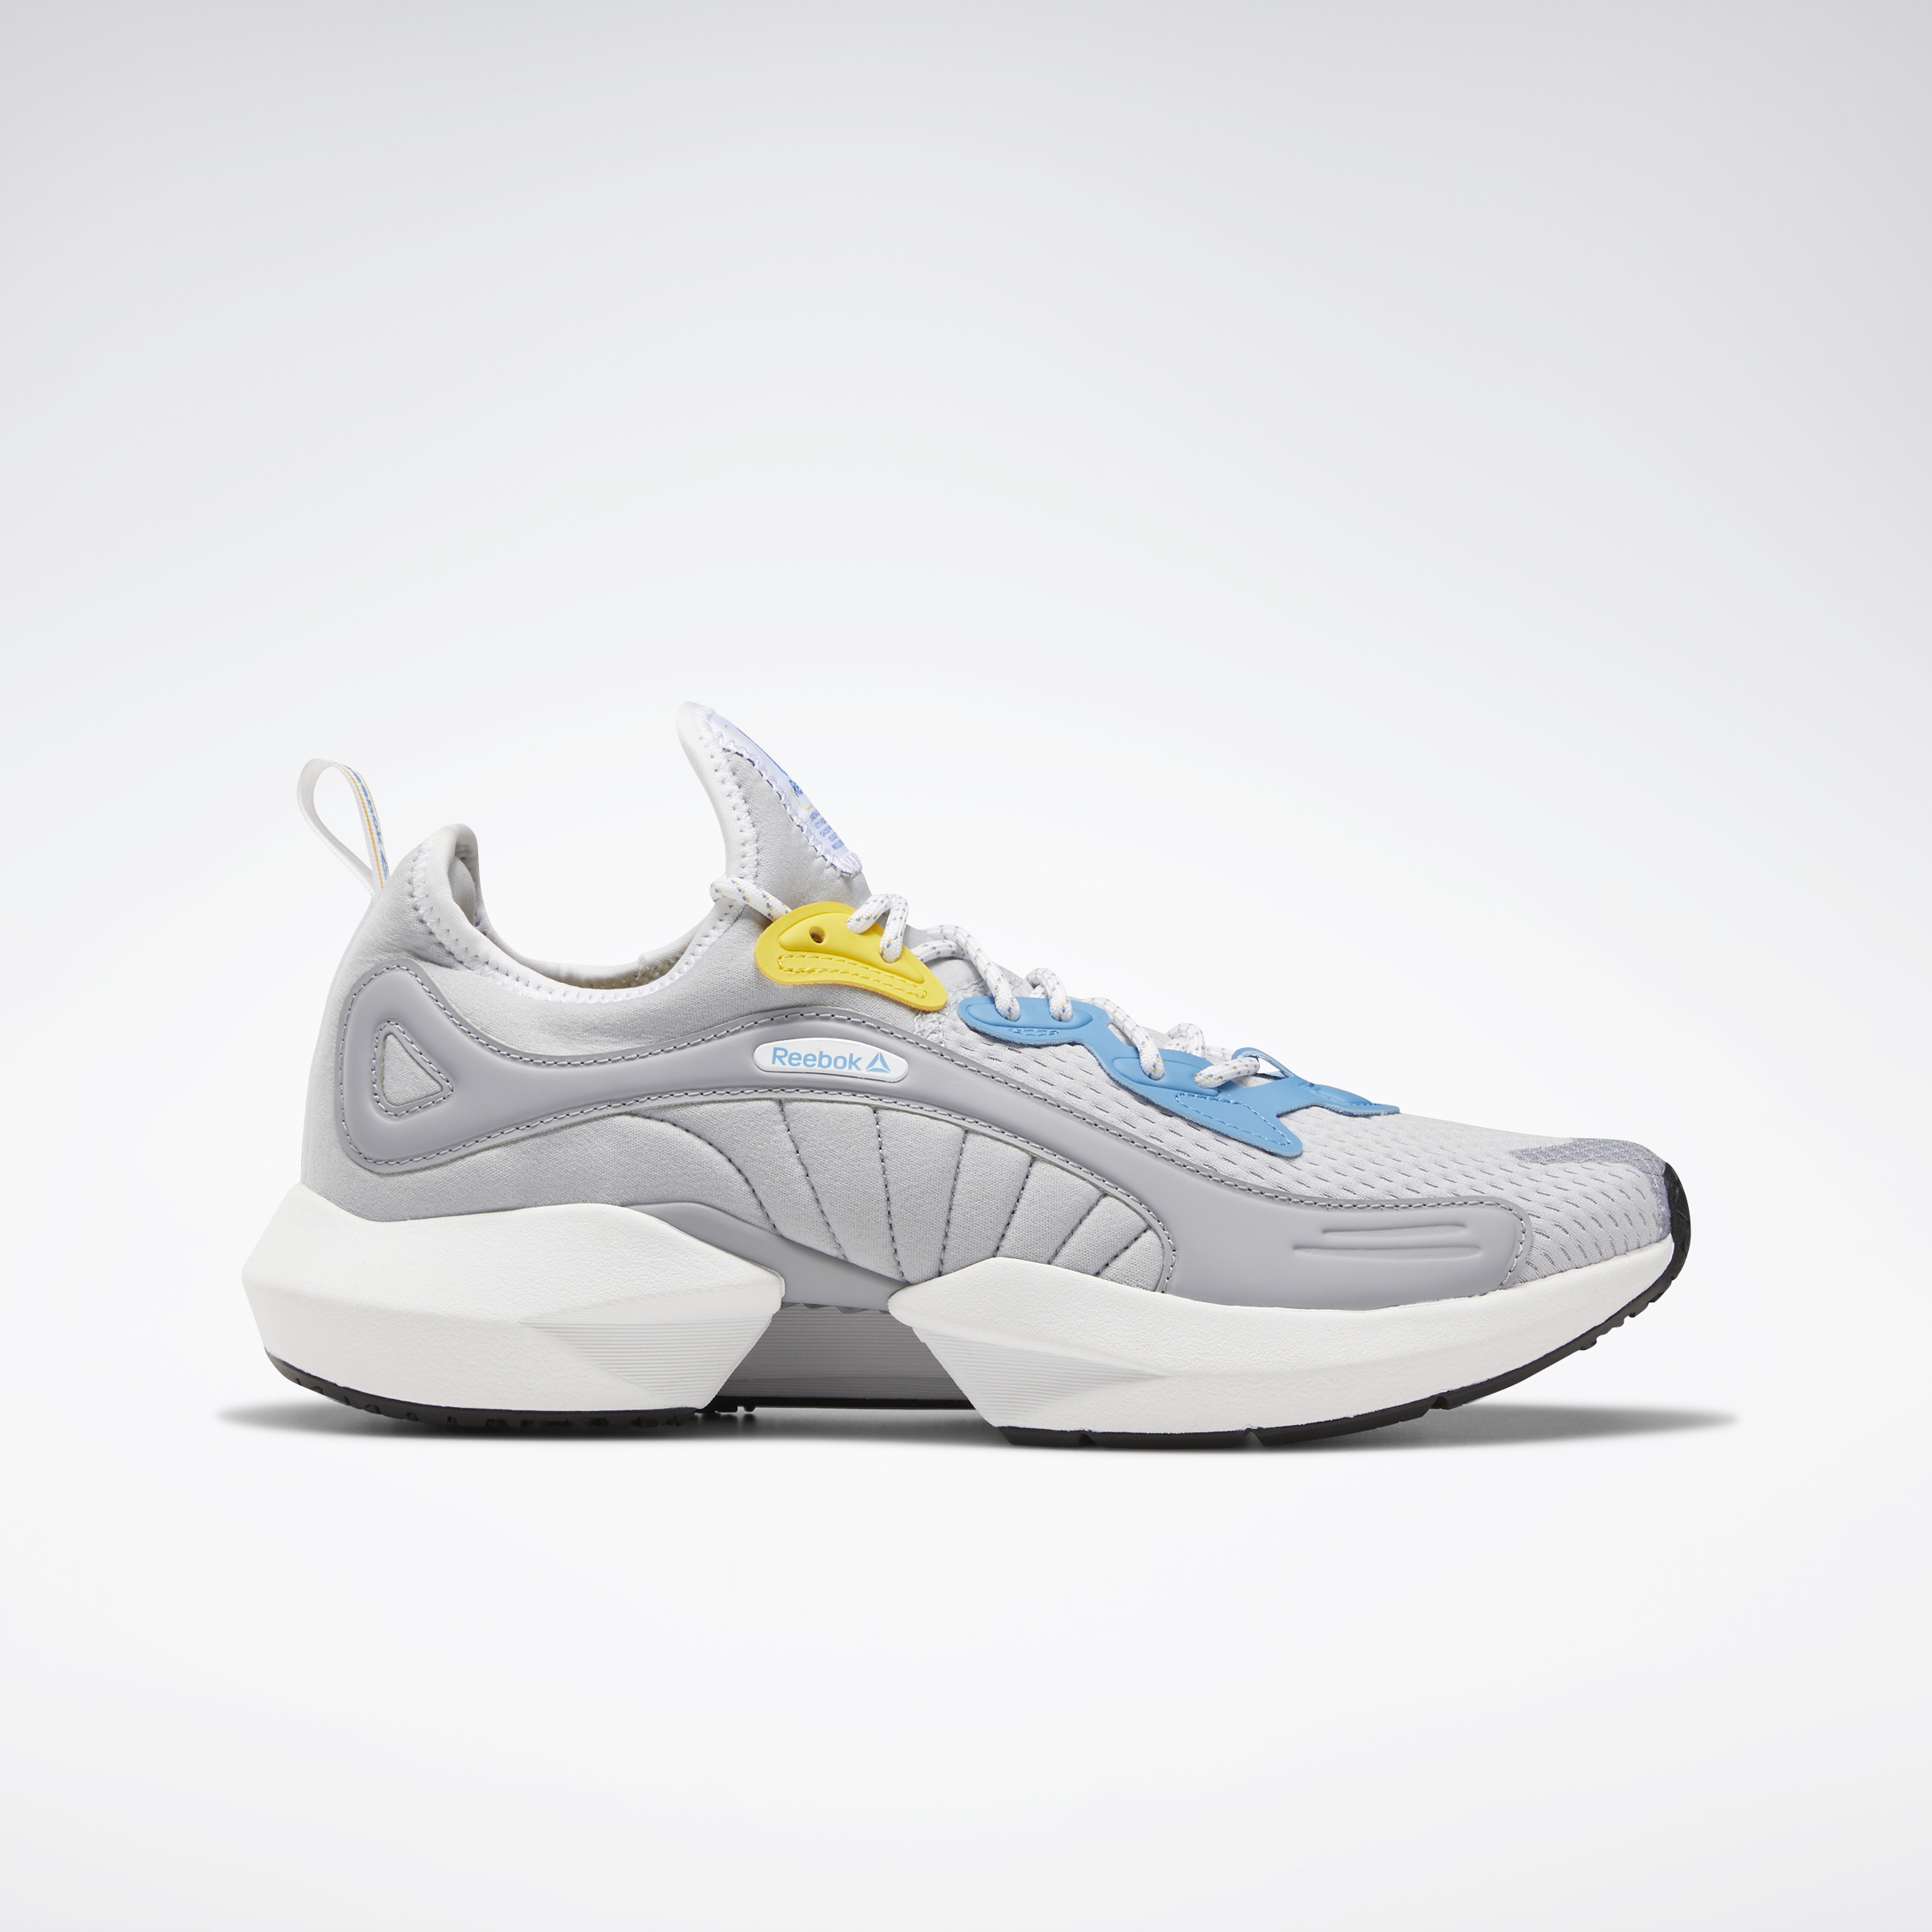 Reebok-Men-039-s-Sole-Fury-00-Shoes thumbnail 10